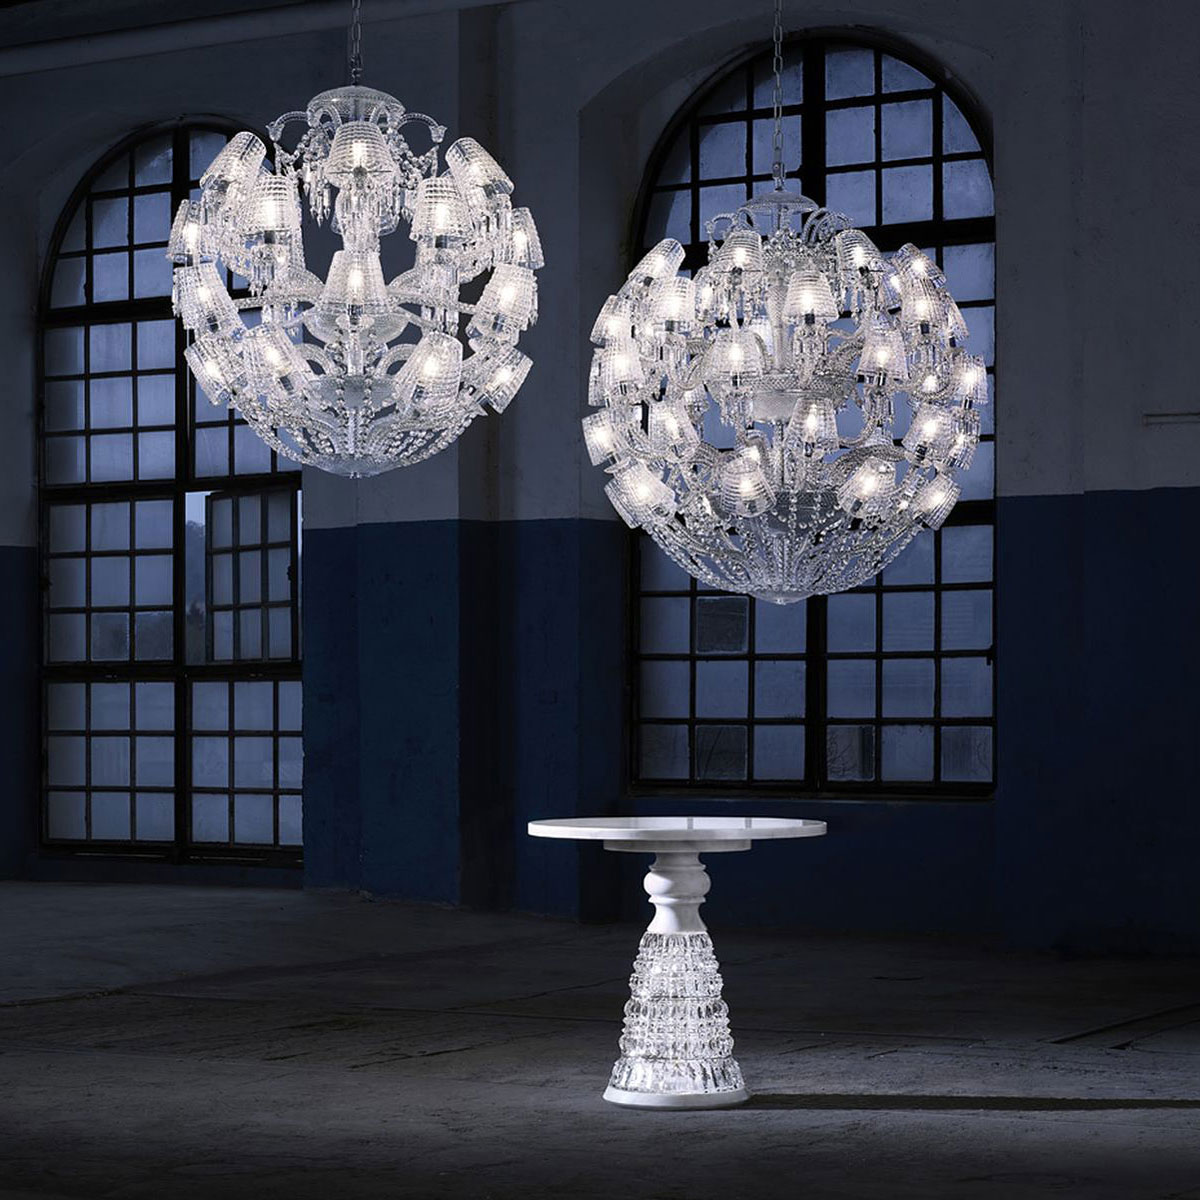 Baccarat Crystal, Le Roi Soleil 40 Light Crystal Chandelier